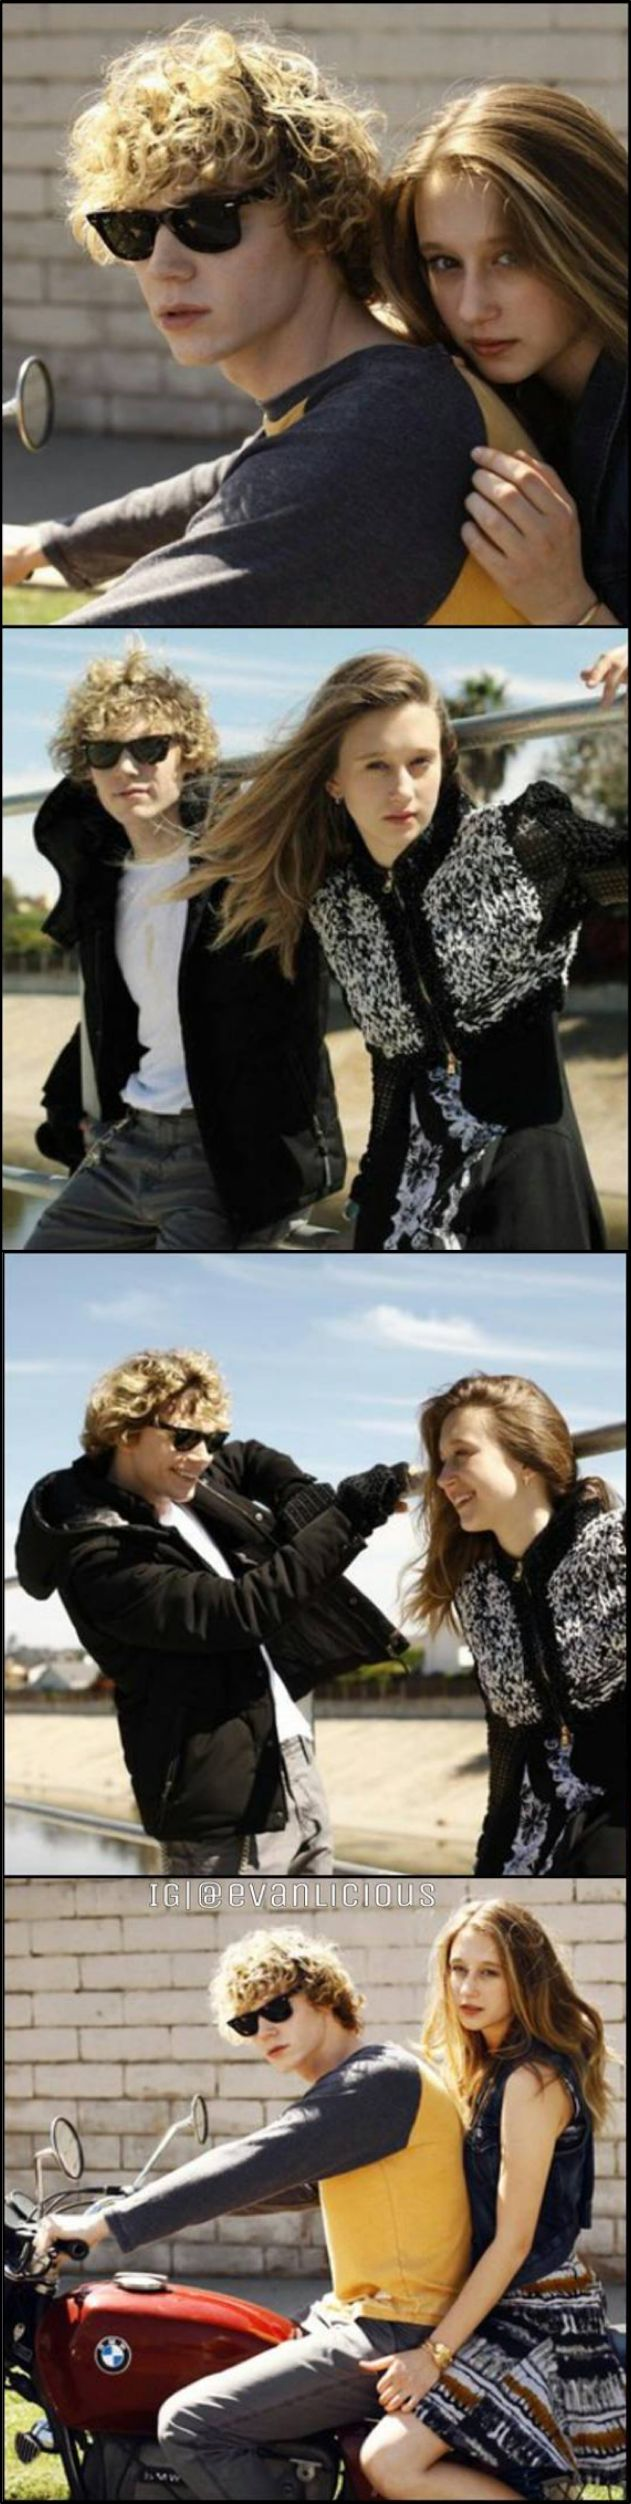 Rare, unedited pics of Evan Peters and Taissa Farmiga. Tate and Violet Forever! Like and save if you agree.